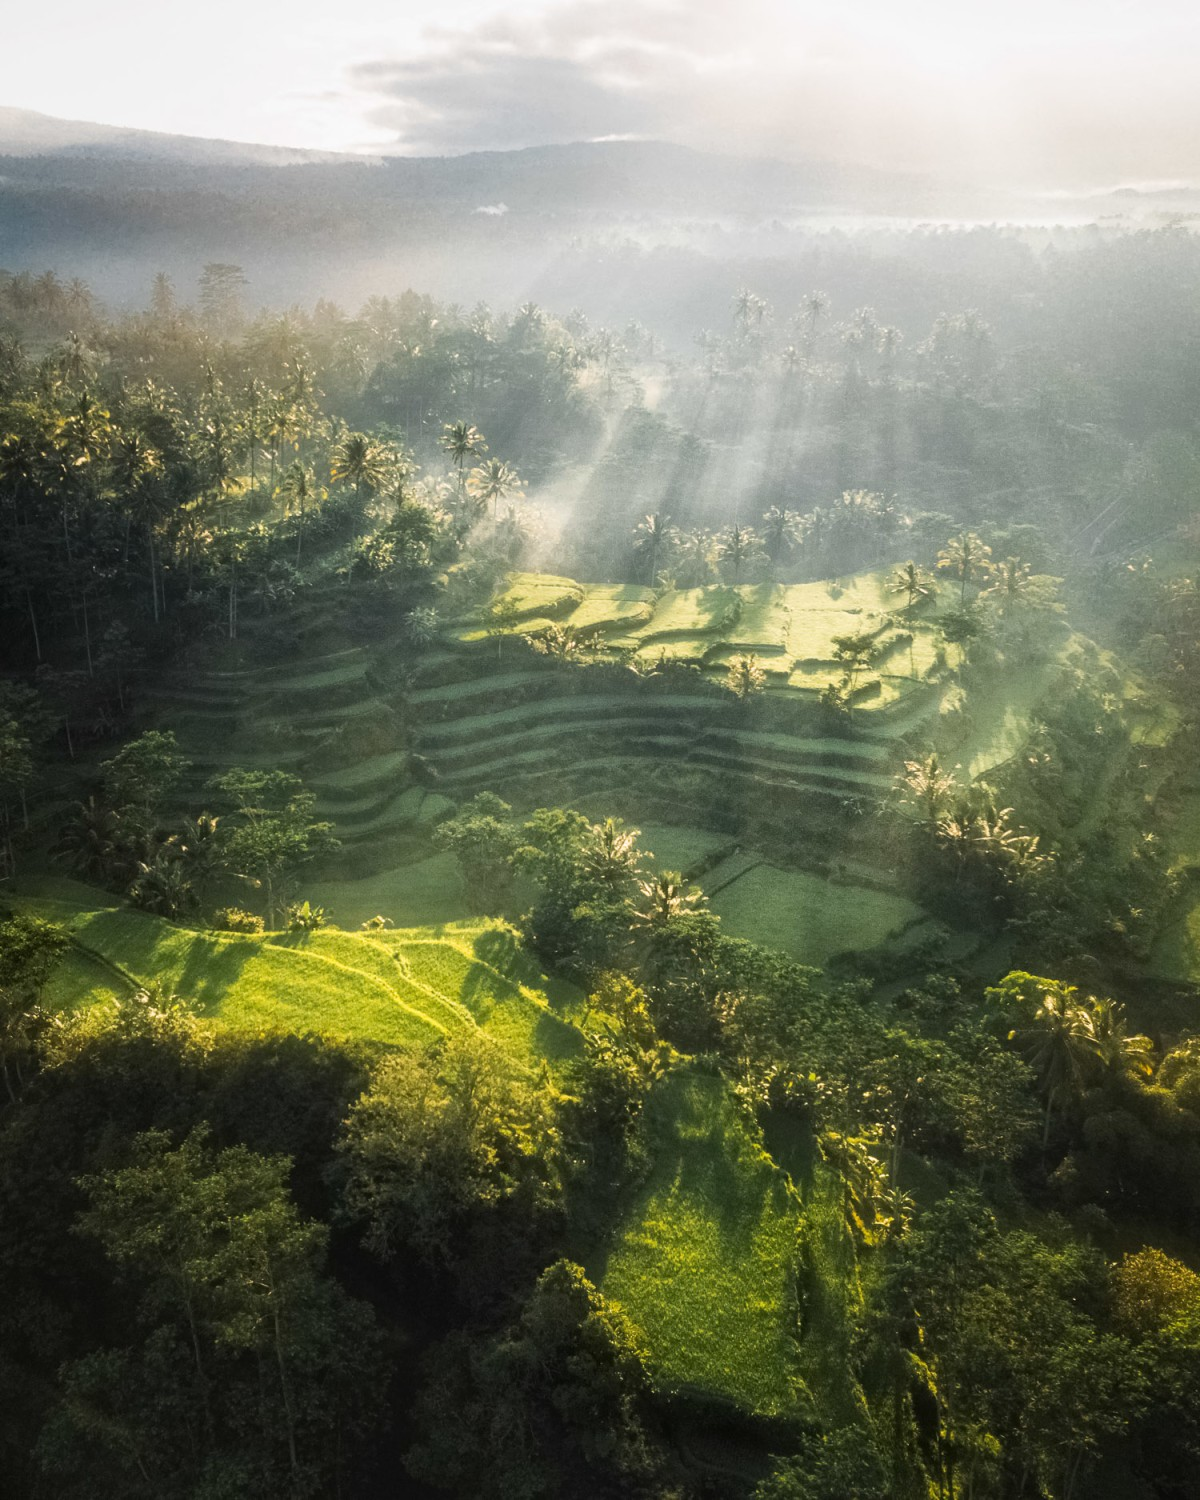 Balinese mornings in the cooler and greener northern bali